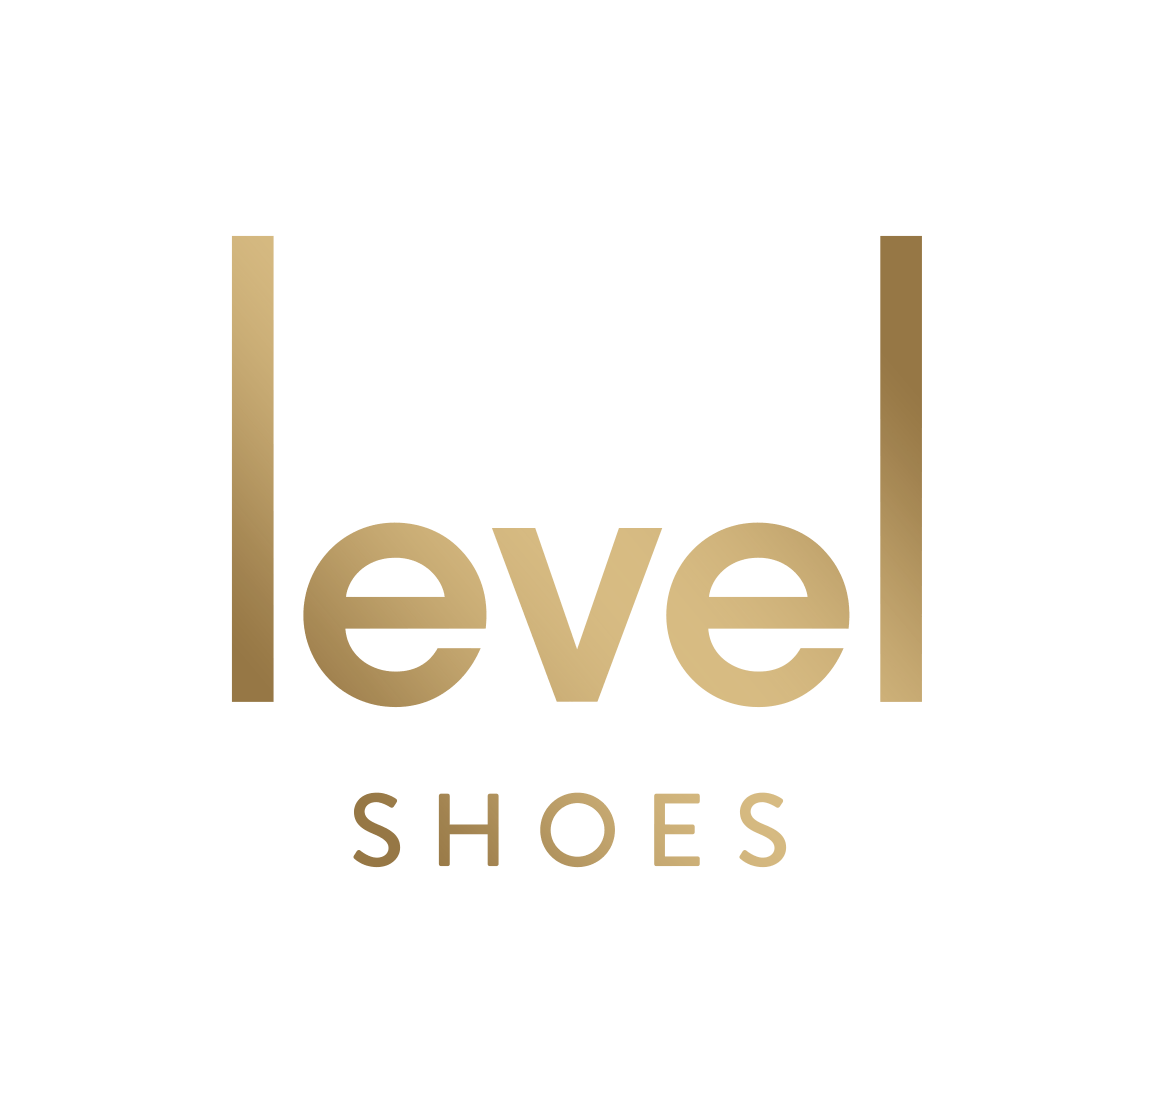 Level Shoes company logo